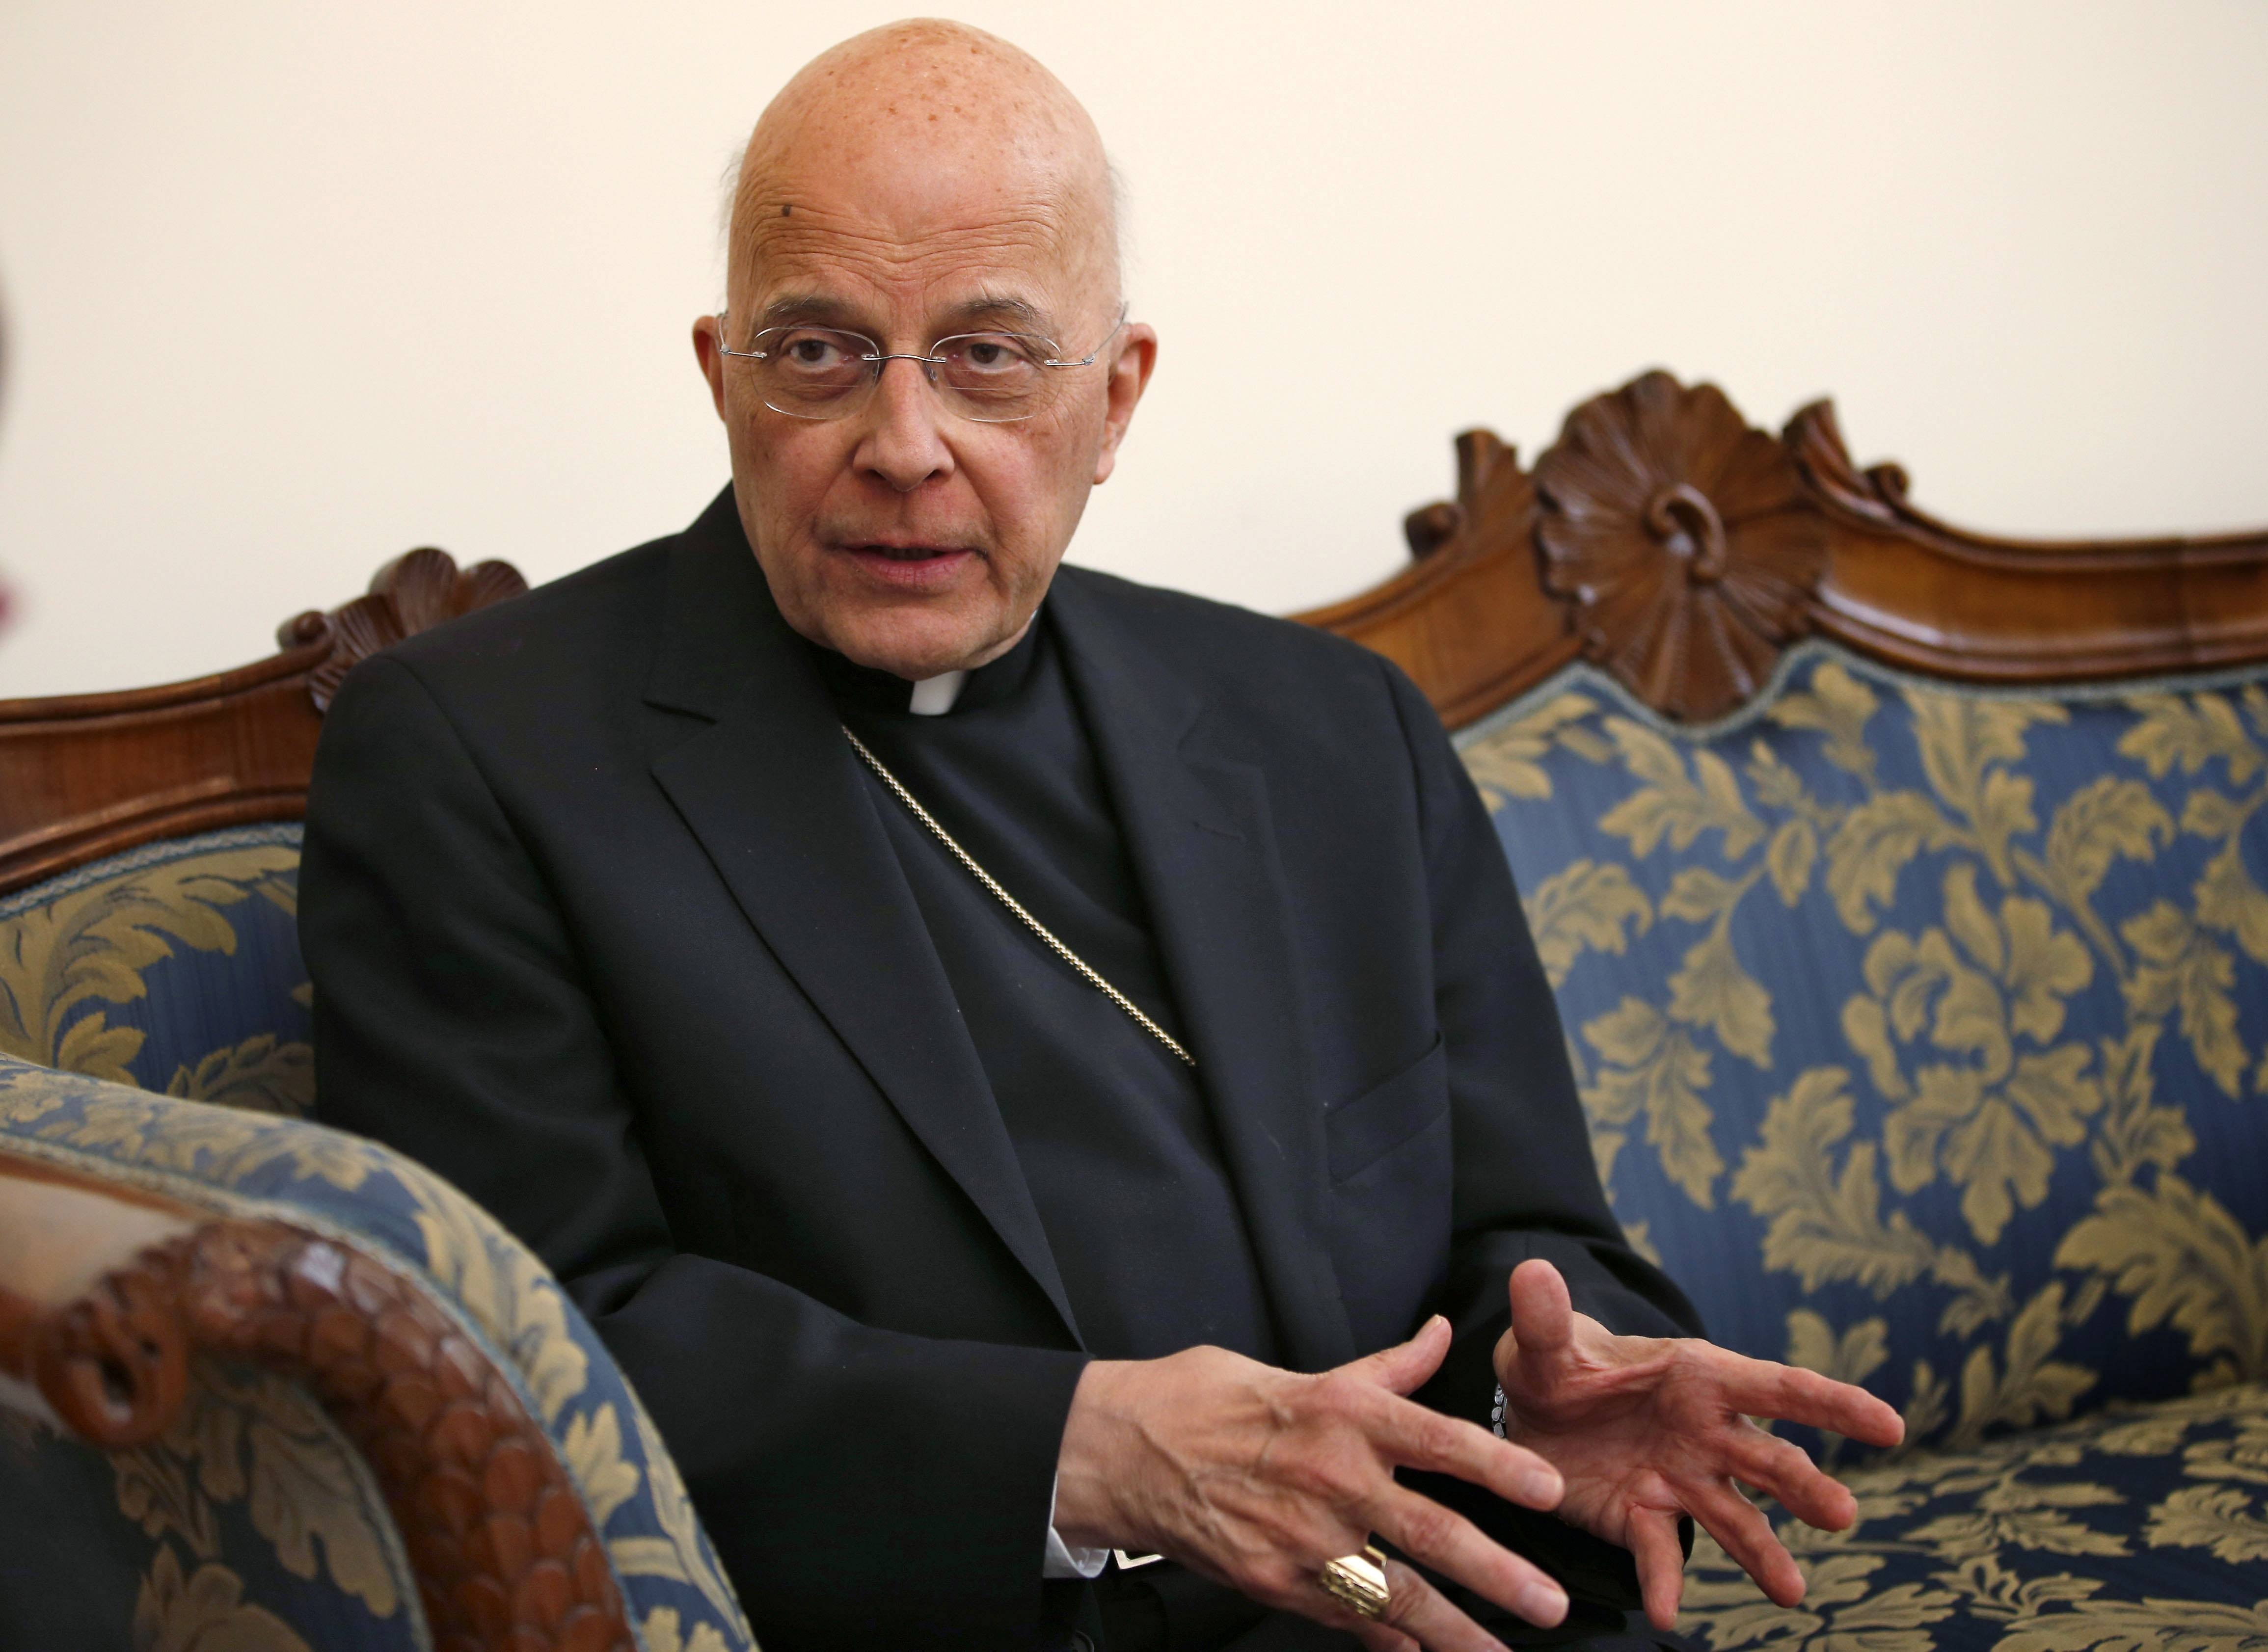 Cardinal Francis George has been hospitalized since last week for dehydration and flu-like symptoms, officials said Tuesday.